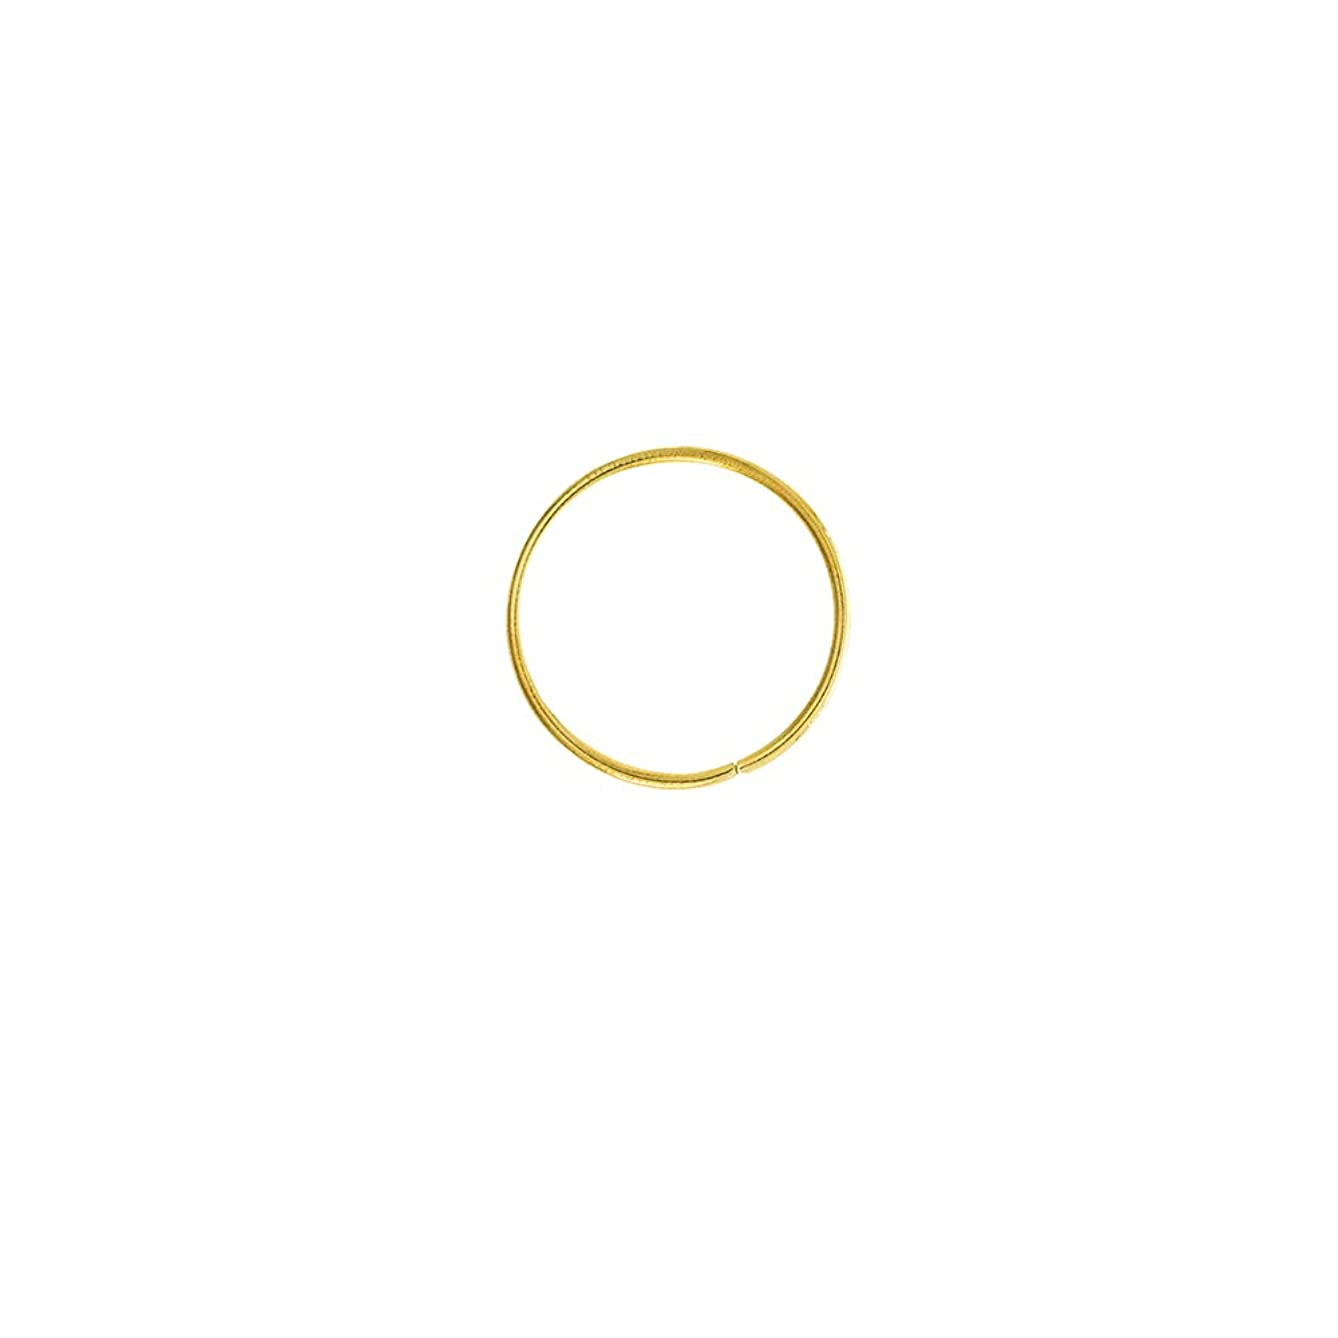 Gold Metal Hoops – Metal Rings for Crafting Dream Catchers, and Other Crafts. 2-inch, 3-inch, 4-inch, 5-inch, 6-inch, and 8-inch